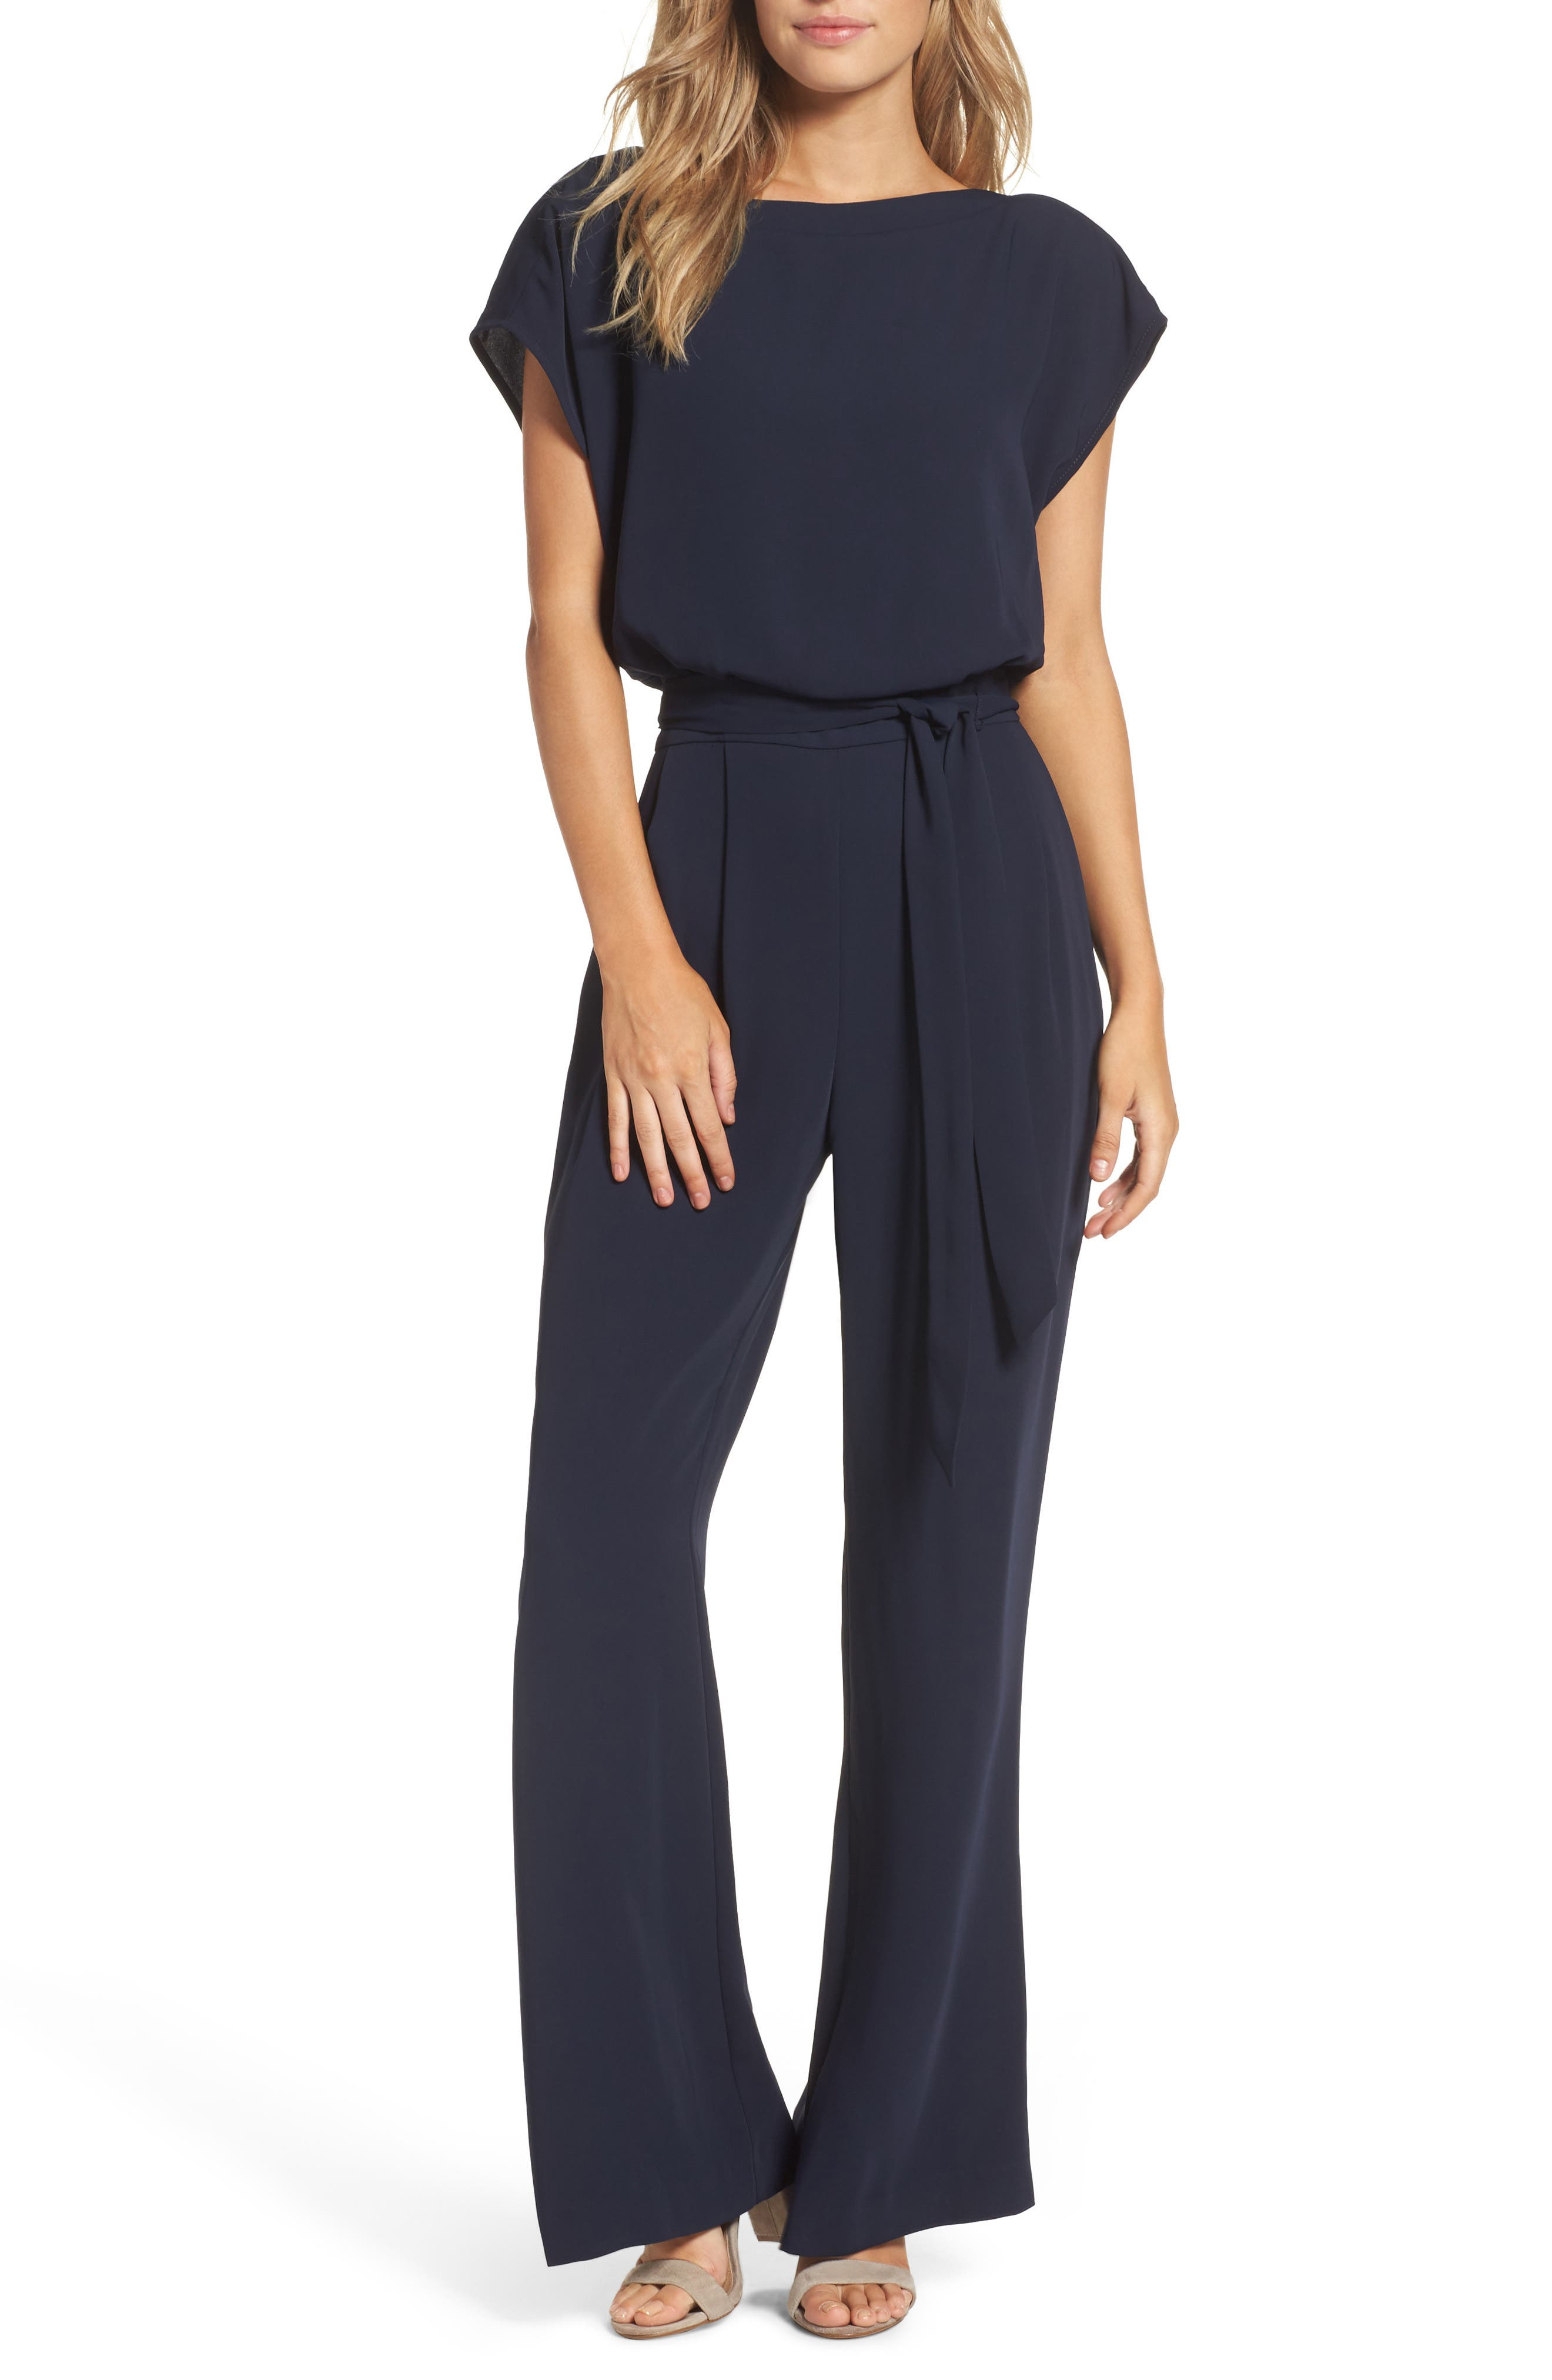 Blue Jumpsuits & Rompers for Women | Nordstrom